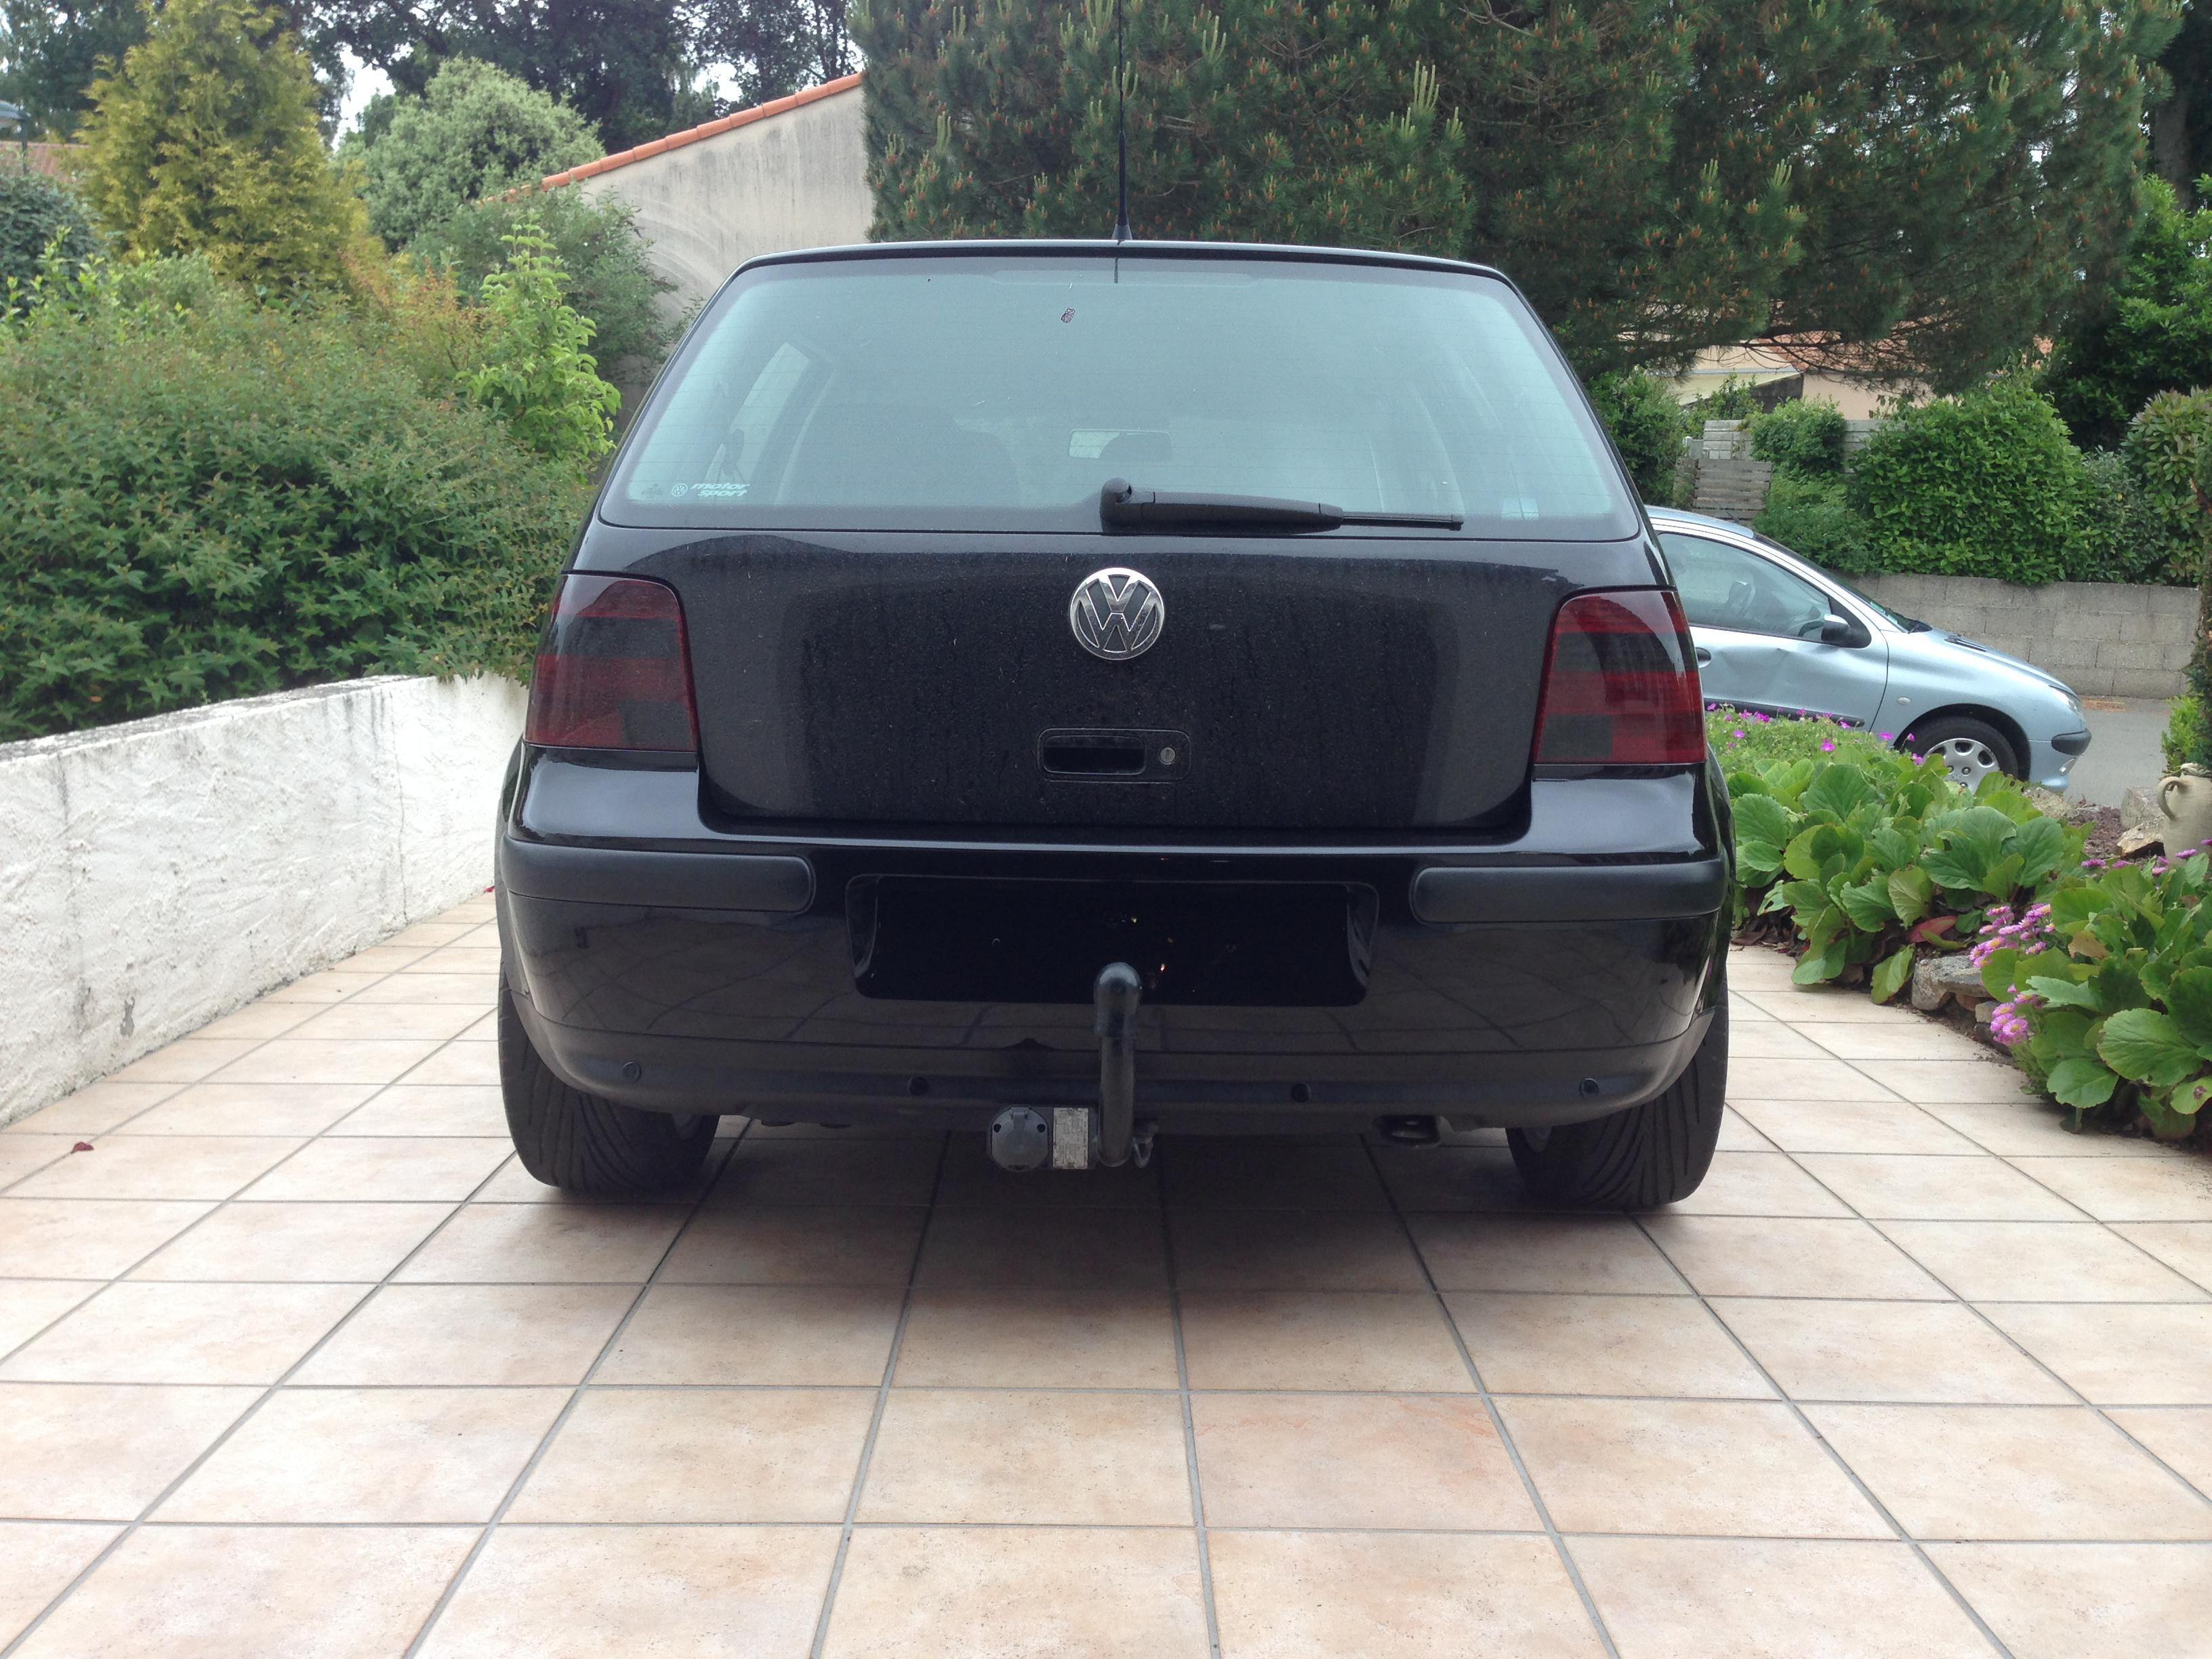 vw golf iv tdi 130 de mitch garage des golf iv tdi 130 page 7 forum volkswagen golf iv. Black Bedroom Furniture Sets. Home Design Ideas